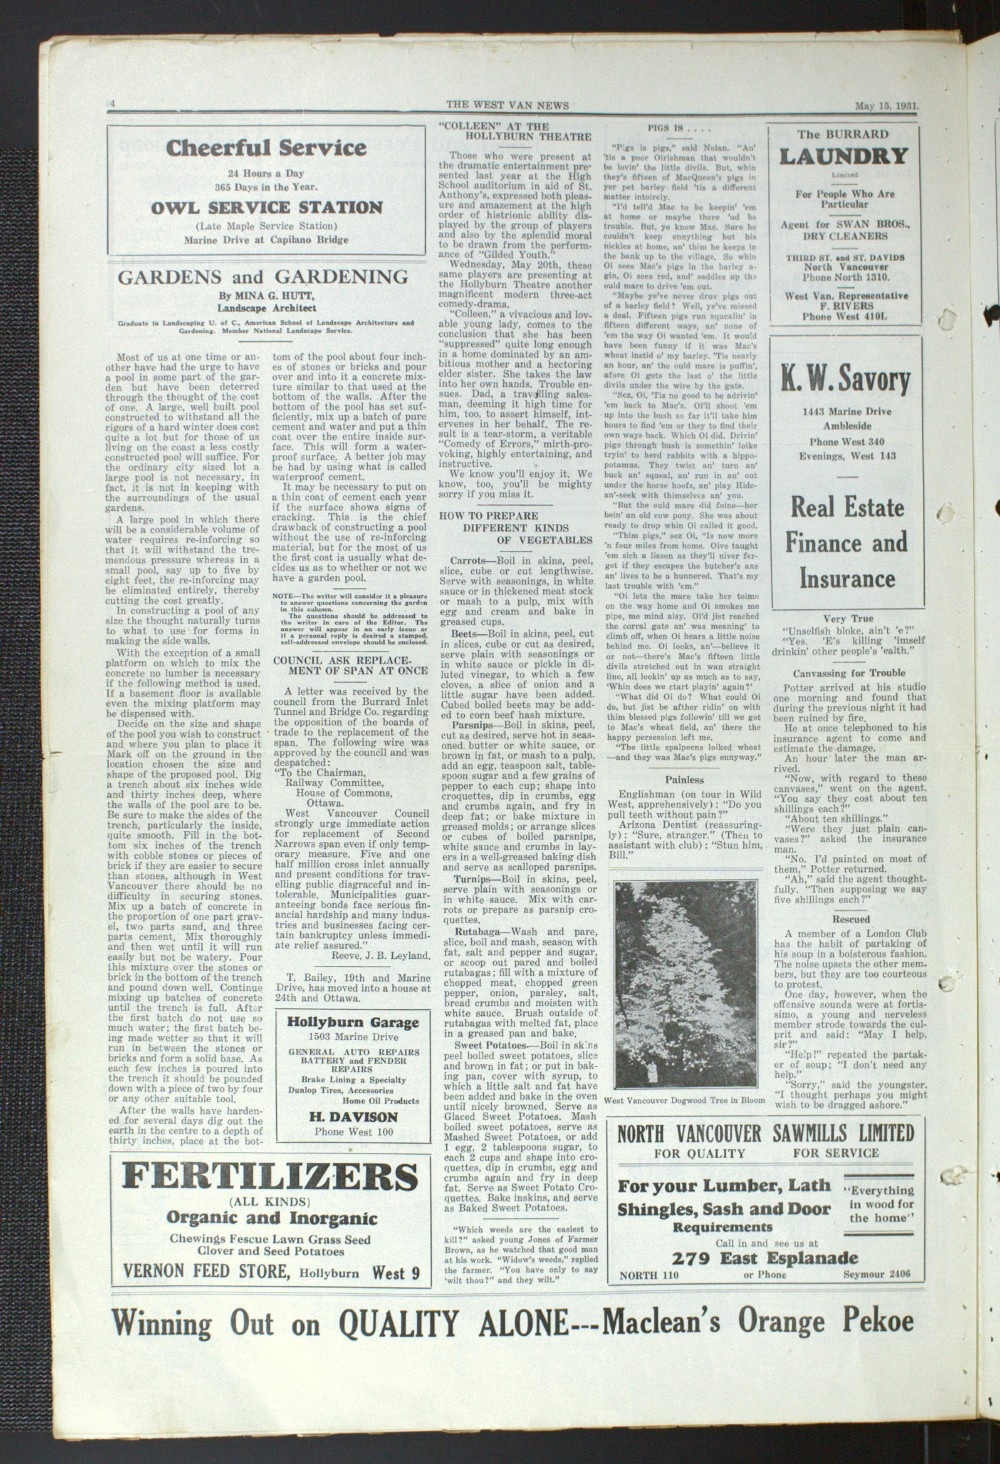 West Van. News (West Vancouver), 15 May 1931